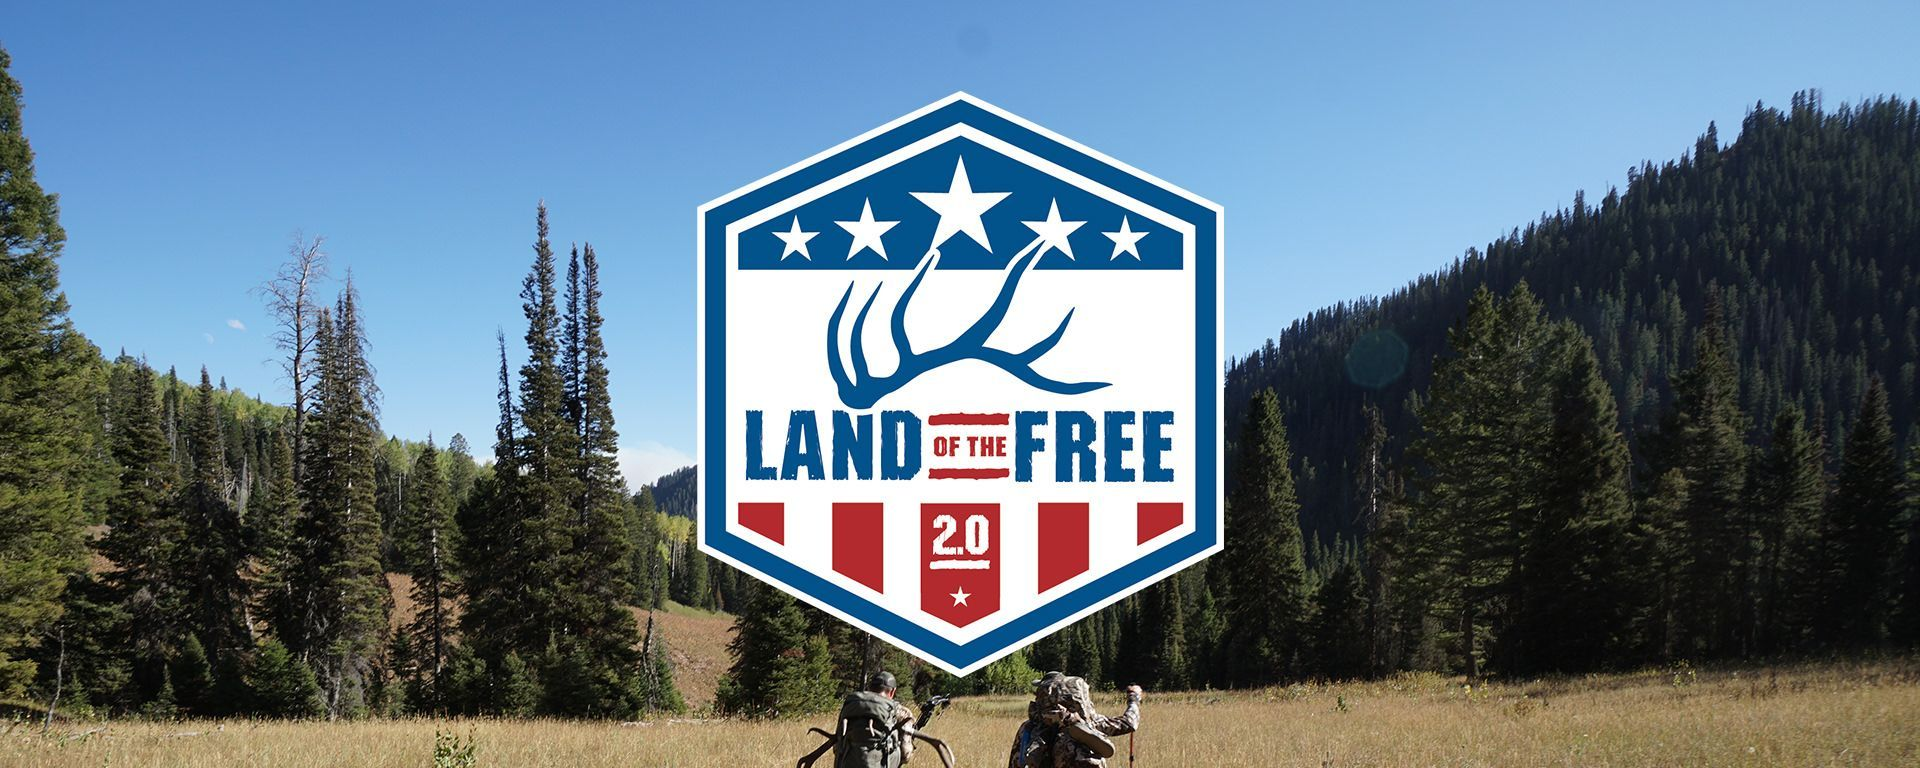 Land Of The Free 2 0 Born And Raised Outdoors Land Of The Free Outdoor Chicago Cubs Logo